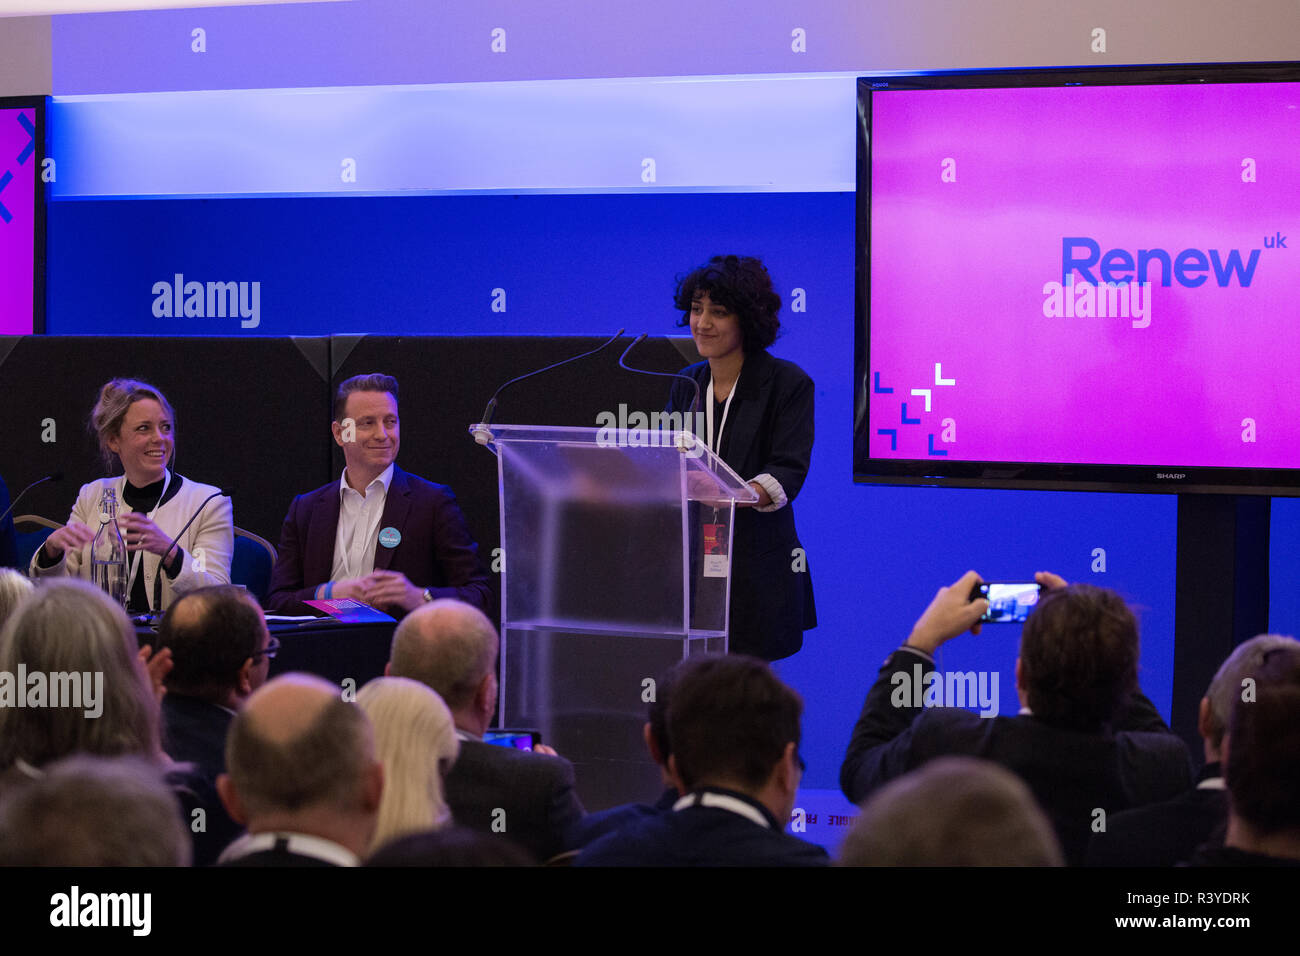 London, UK. 24th November, 2018. Zara Sadiq, candidate for Renew UK, a new centrist political party launched in February 2018, addresses its inaugural National Assembly at Westminster Central Hall. Renew UK, led by Leaders Annabel Mullin and James Torrance and Deputy Leader James Clarke, has signed up 100 candidates ready to stand in future UK elections based on a wide-ranging programme of reform. Credit: Mark Kerrison/Alamy Live News - Stock Image